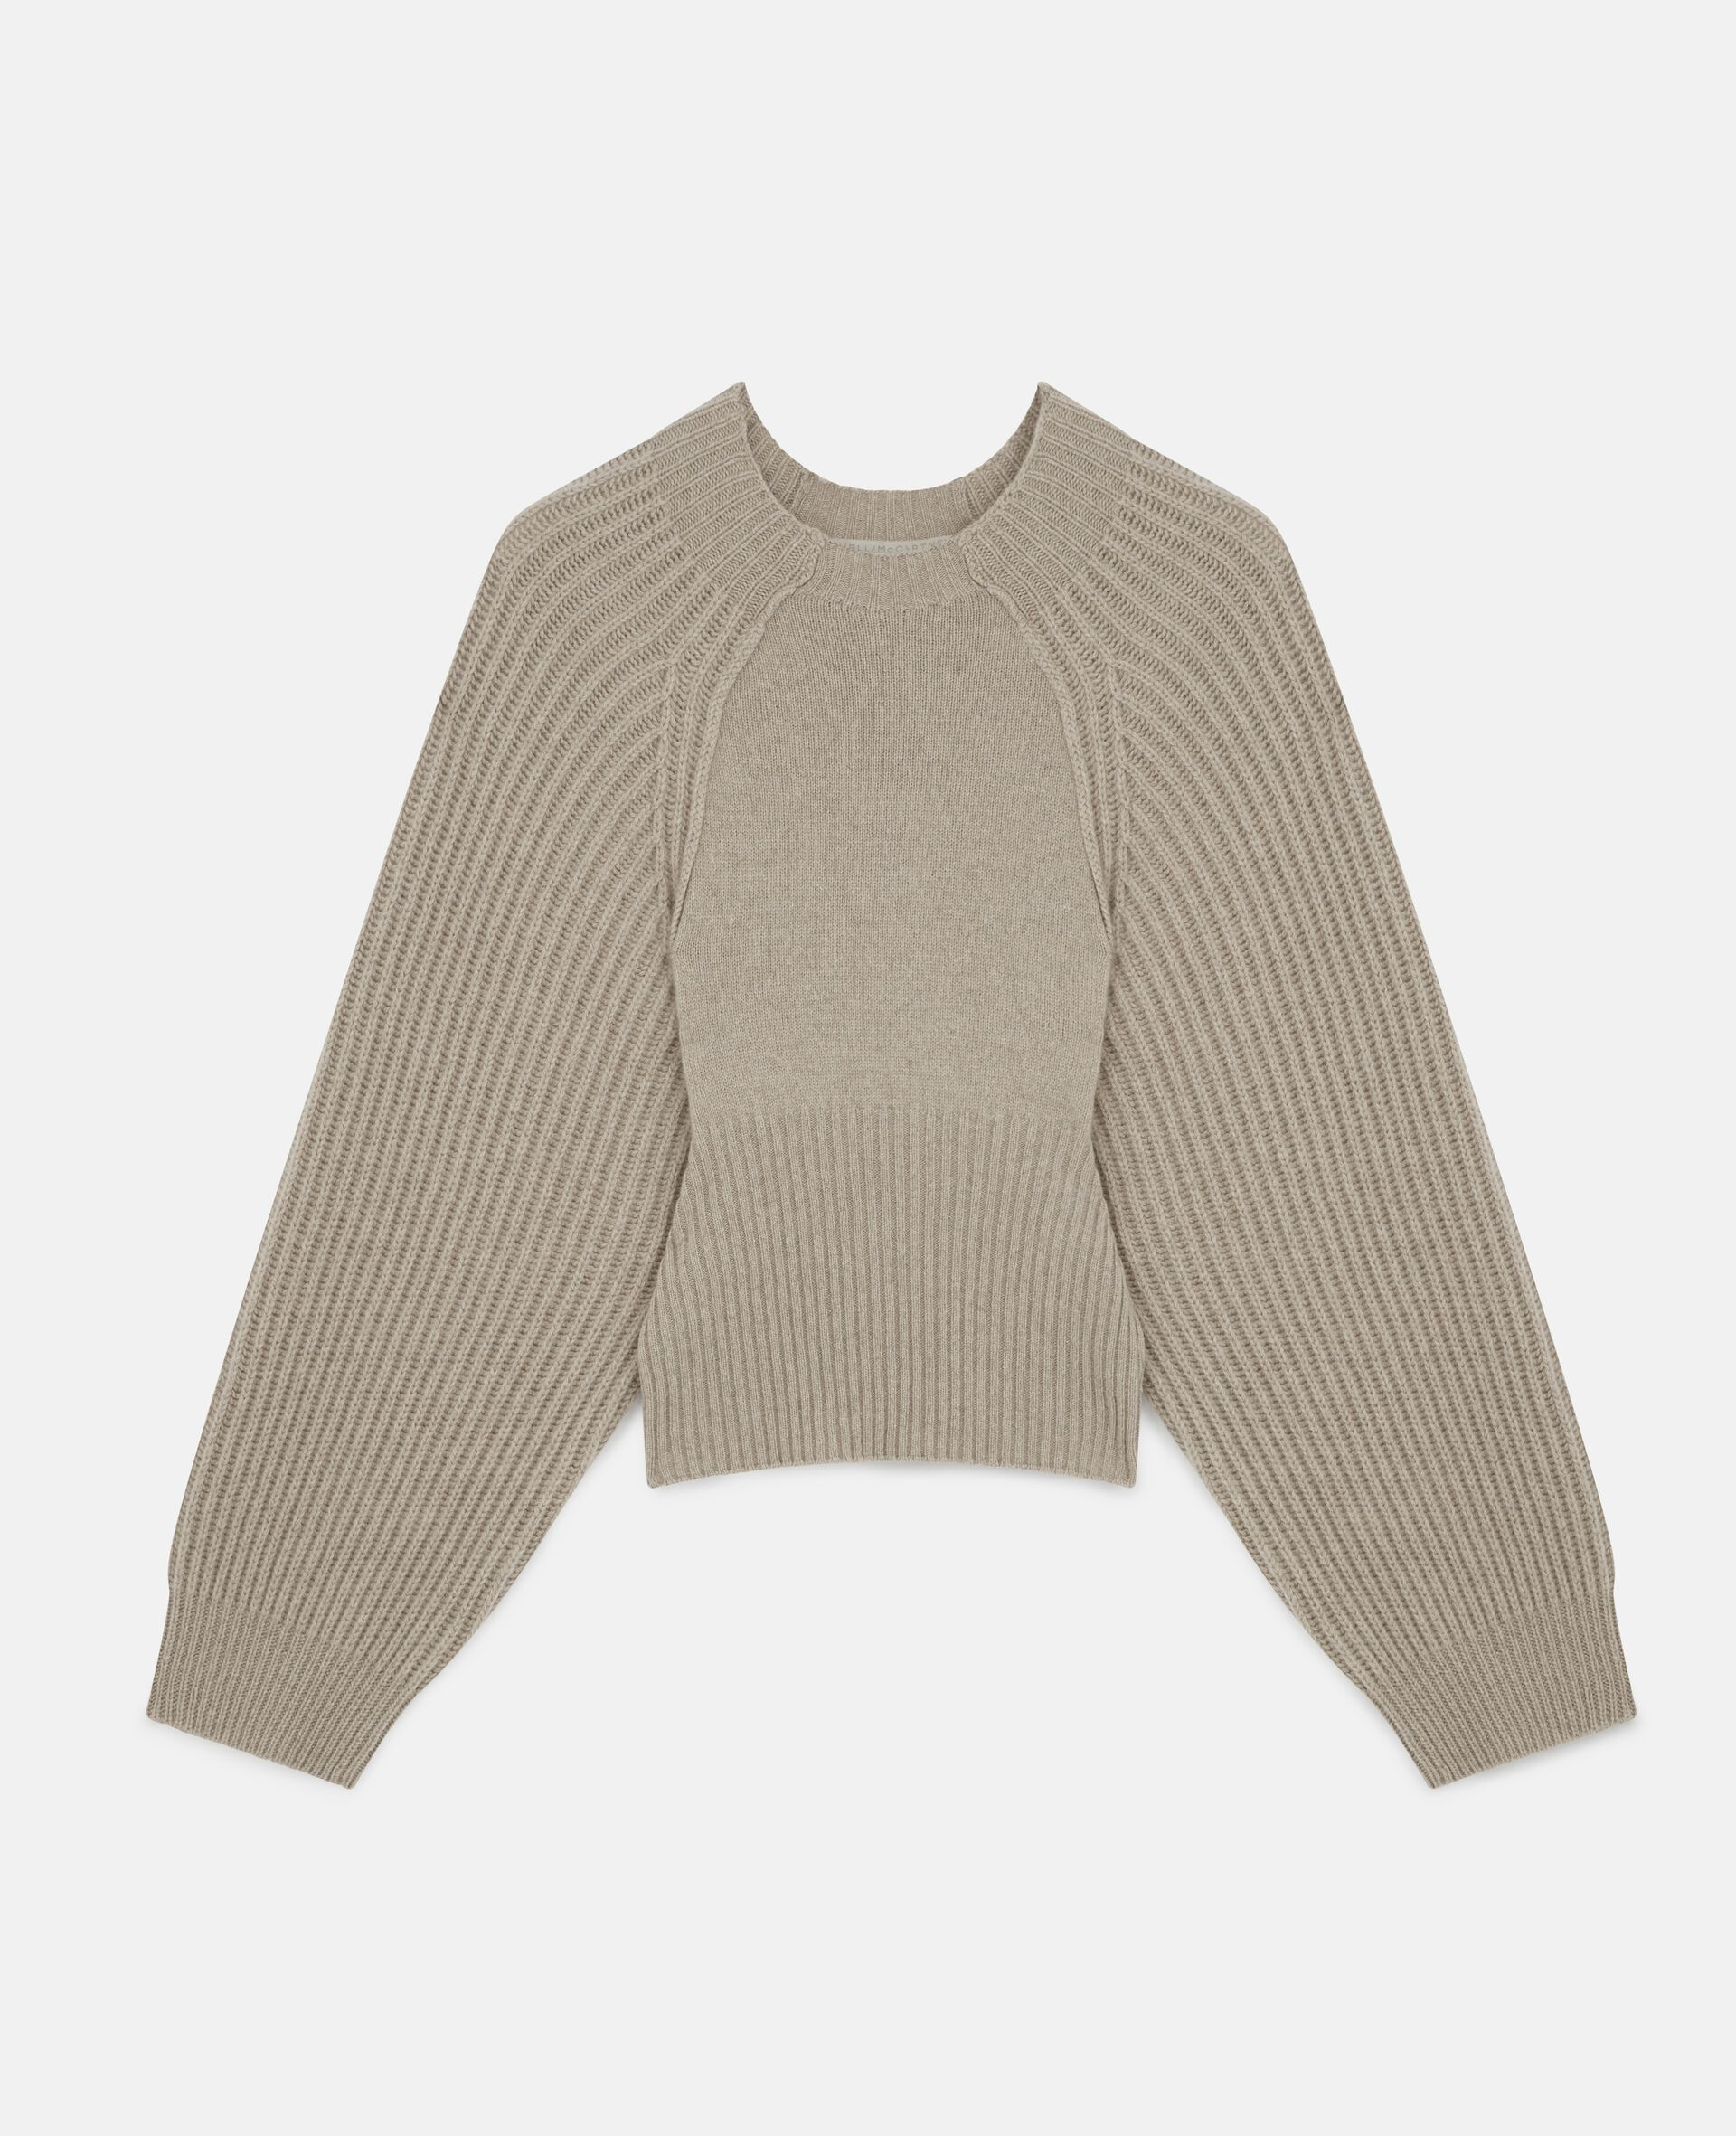 Cropped Knit Sweater -Beige-large image number 0